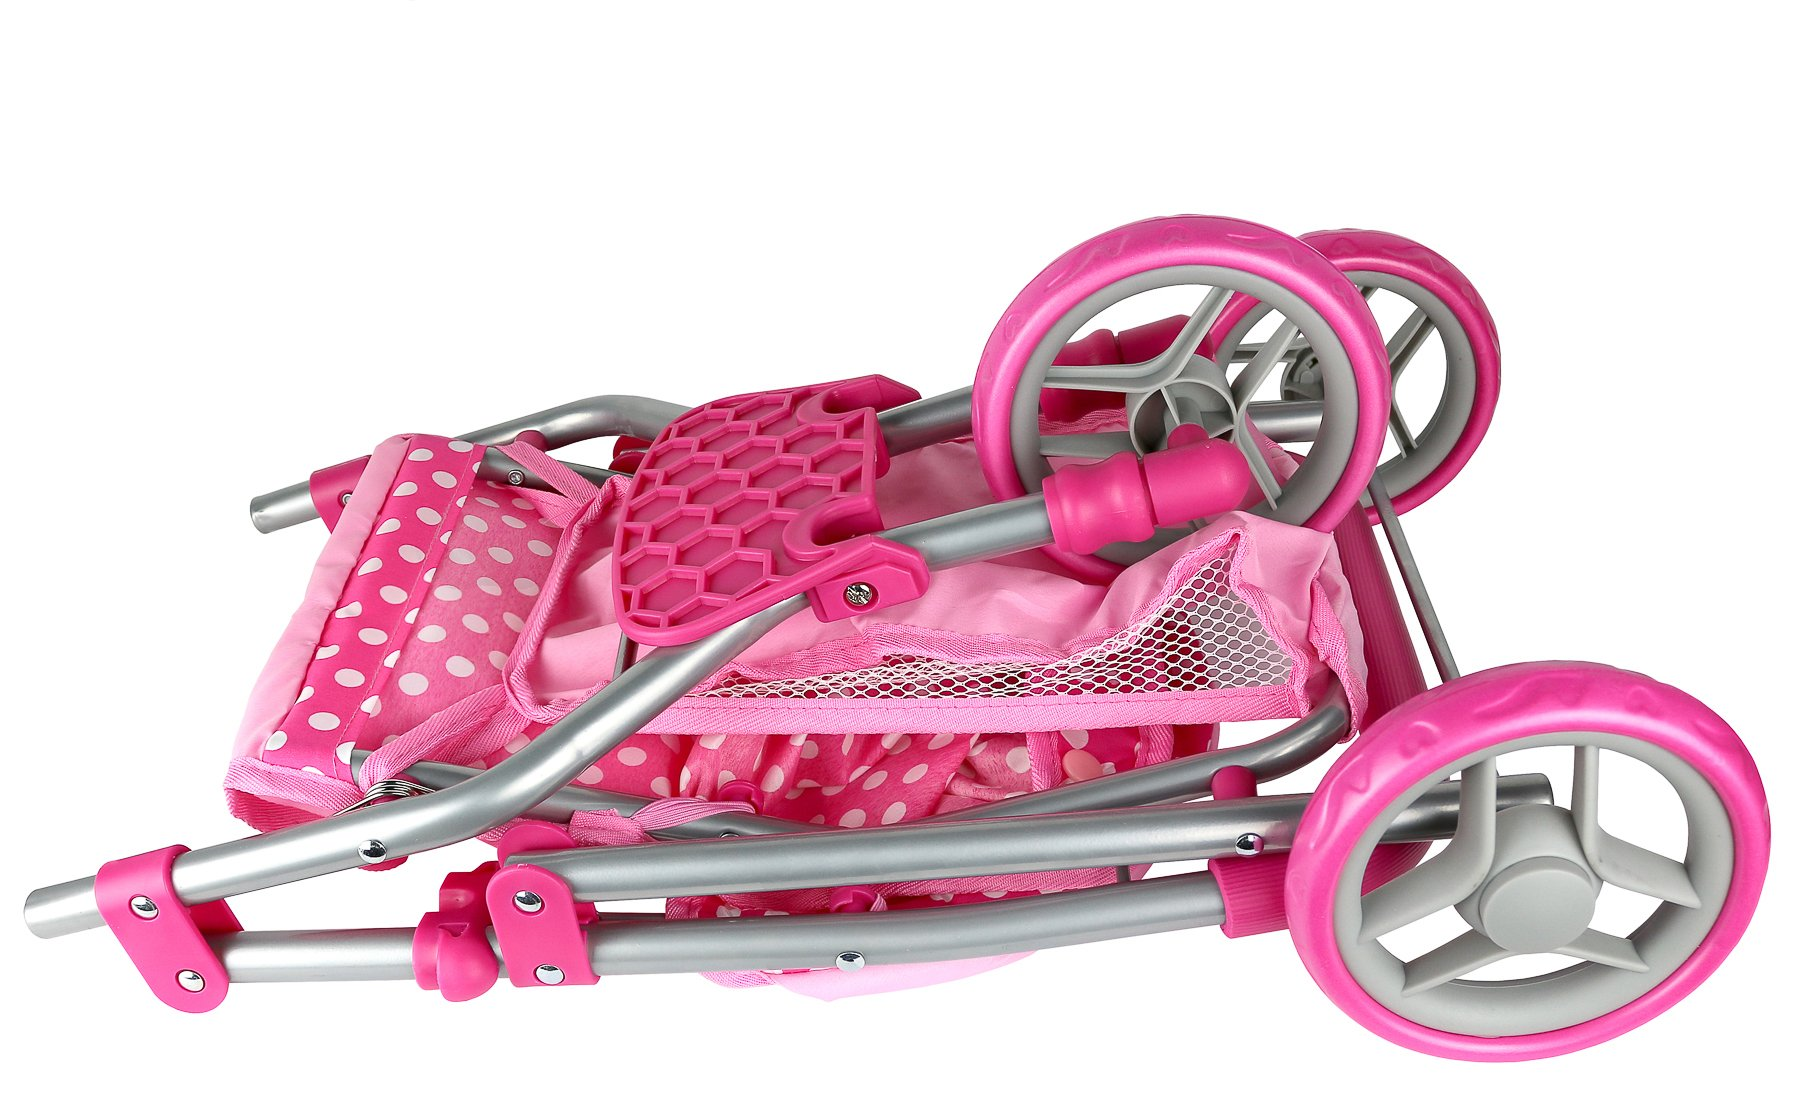 Precious Toys, Pink & White Polka Dots Foldable Doll Stroller Jogger, Foam Handles, and Hot Pink Frame by Precious toys